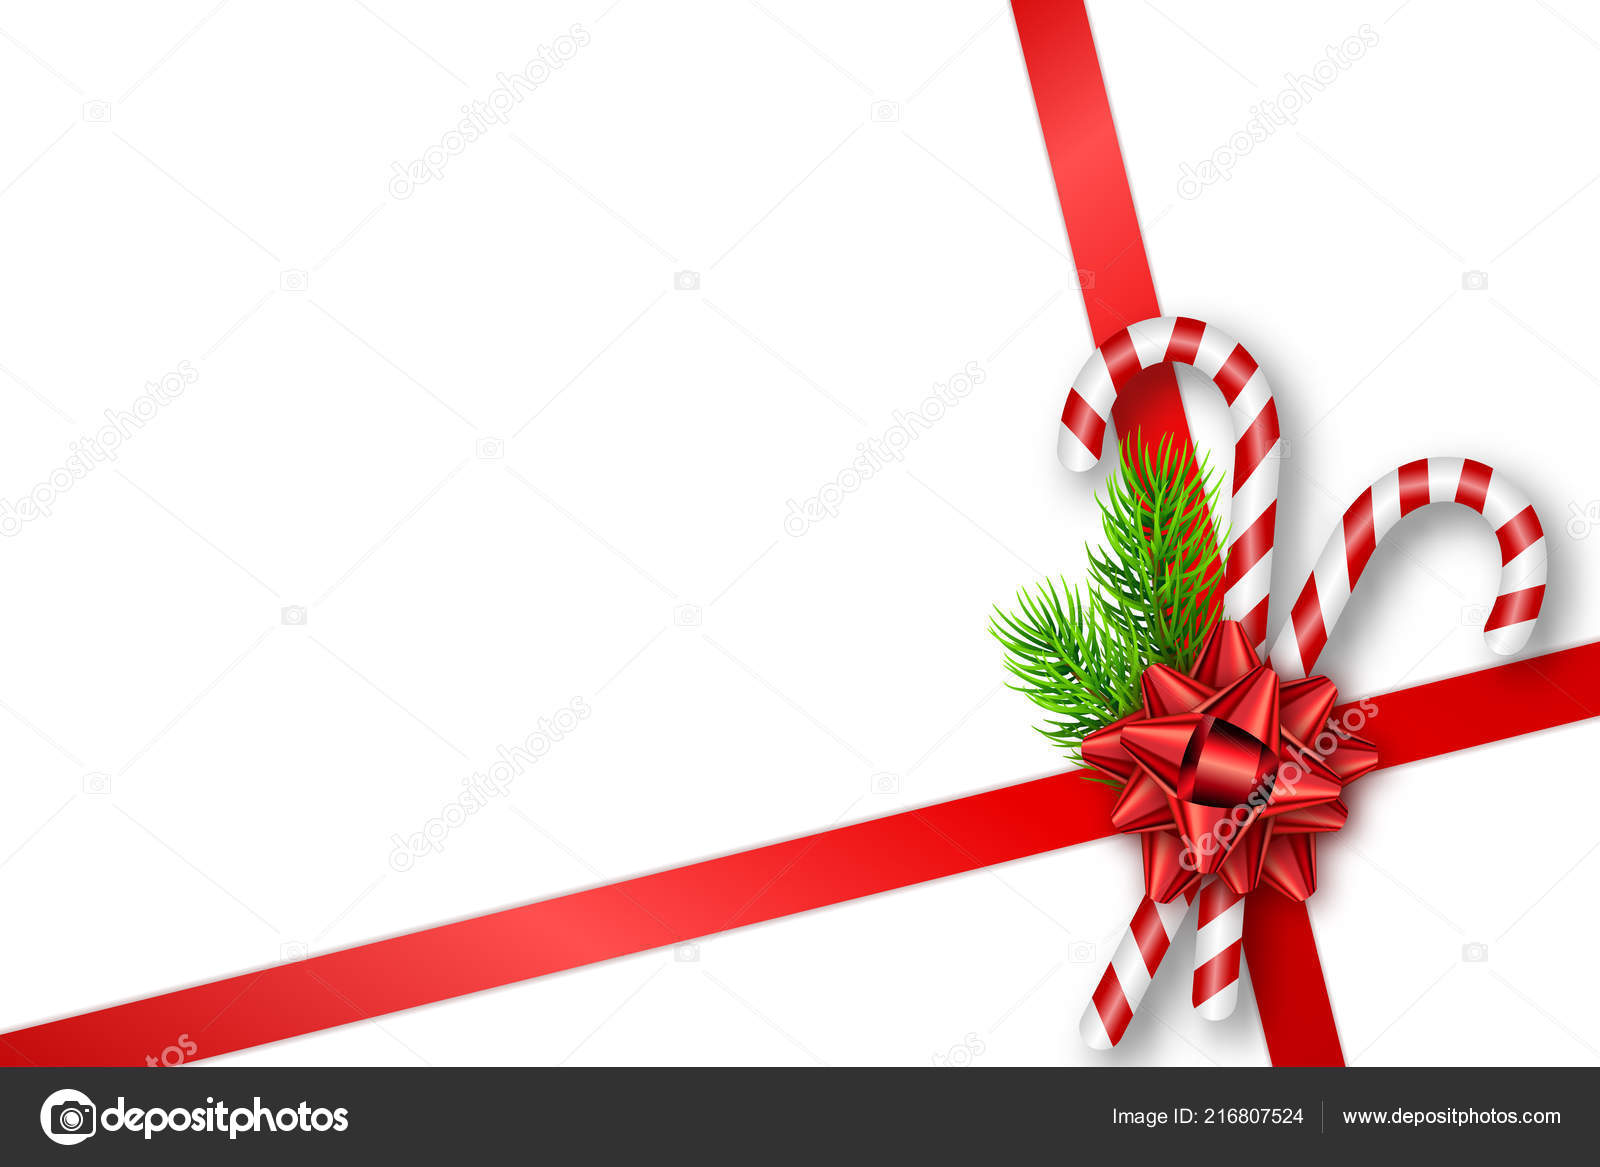 Christmas Gift Card Poster.Holiday Christmas Gift Card With Red Bow Fir Tree Branches